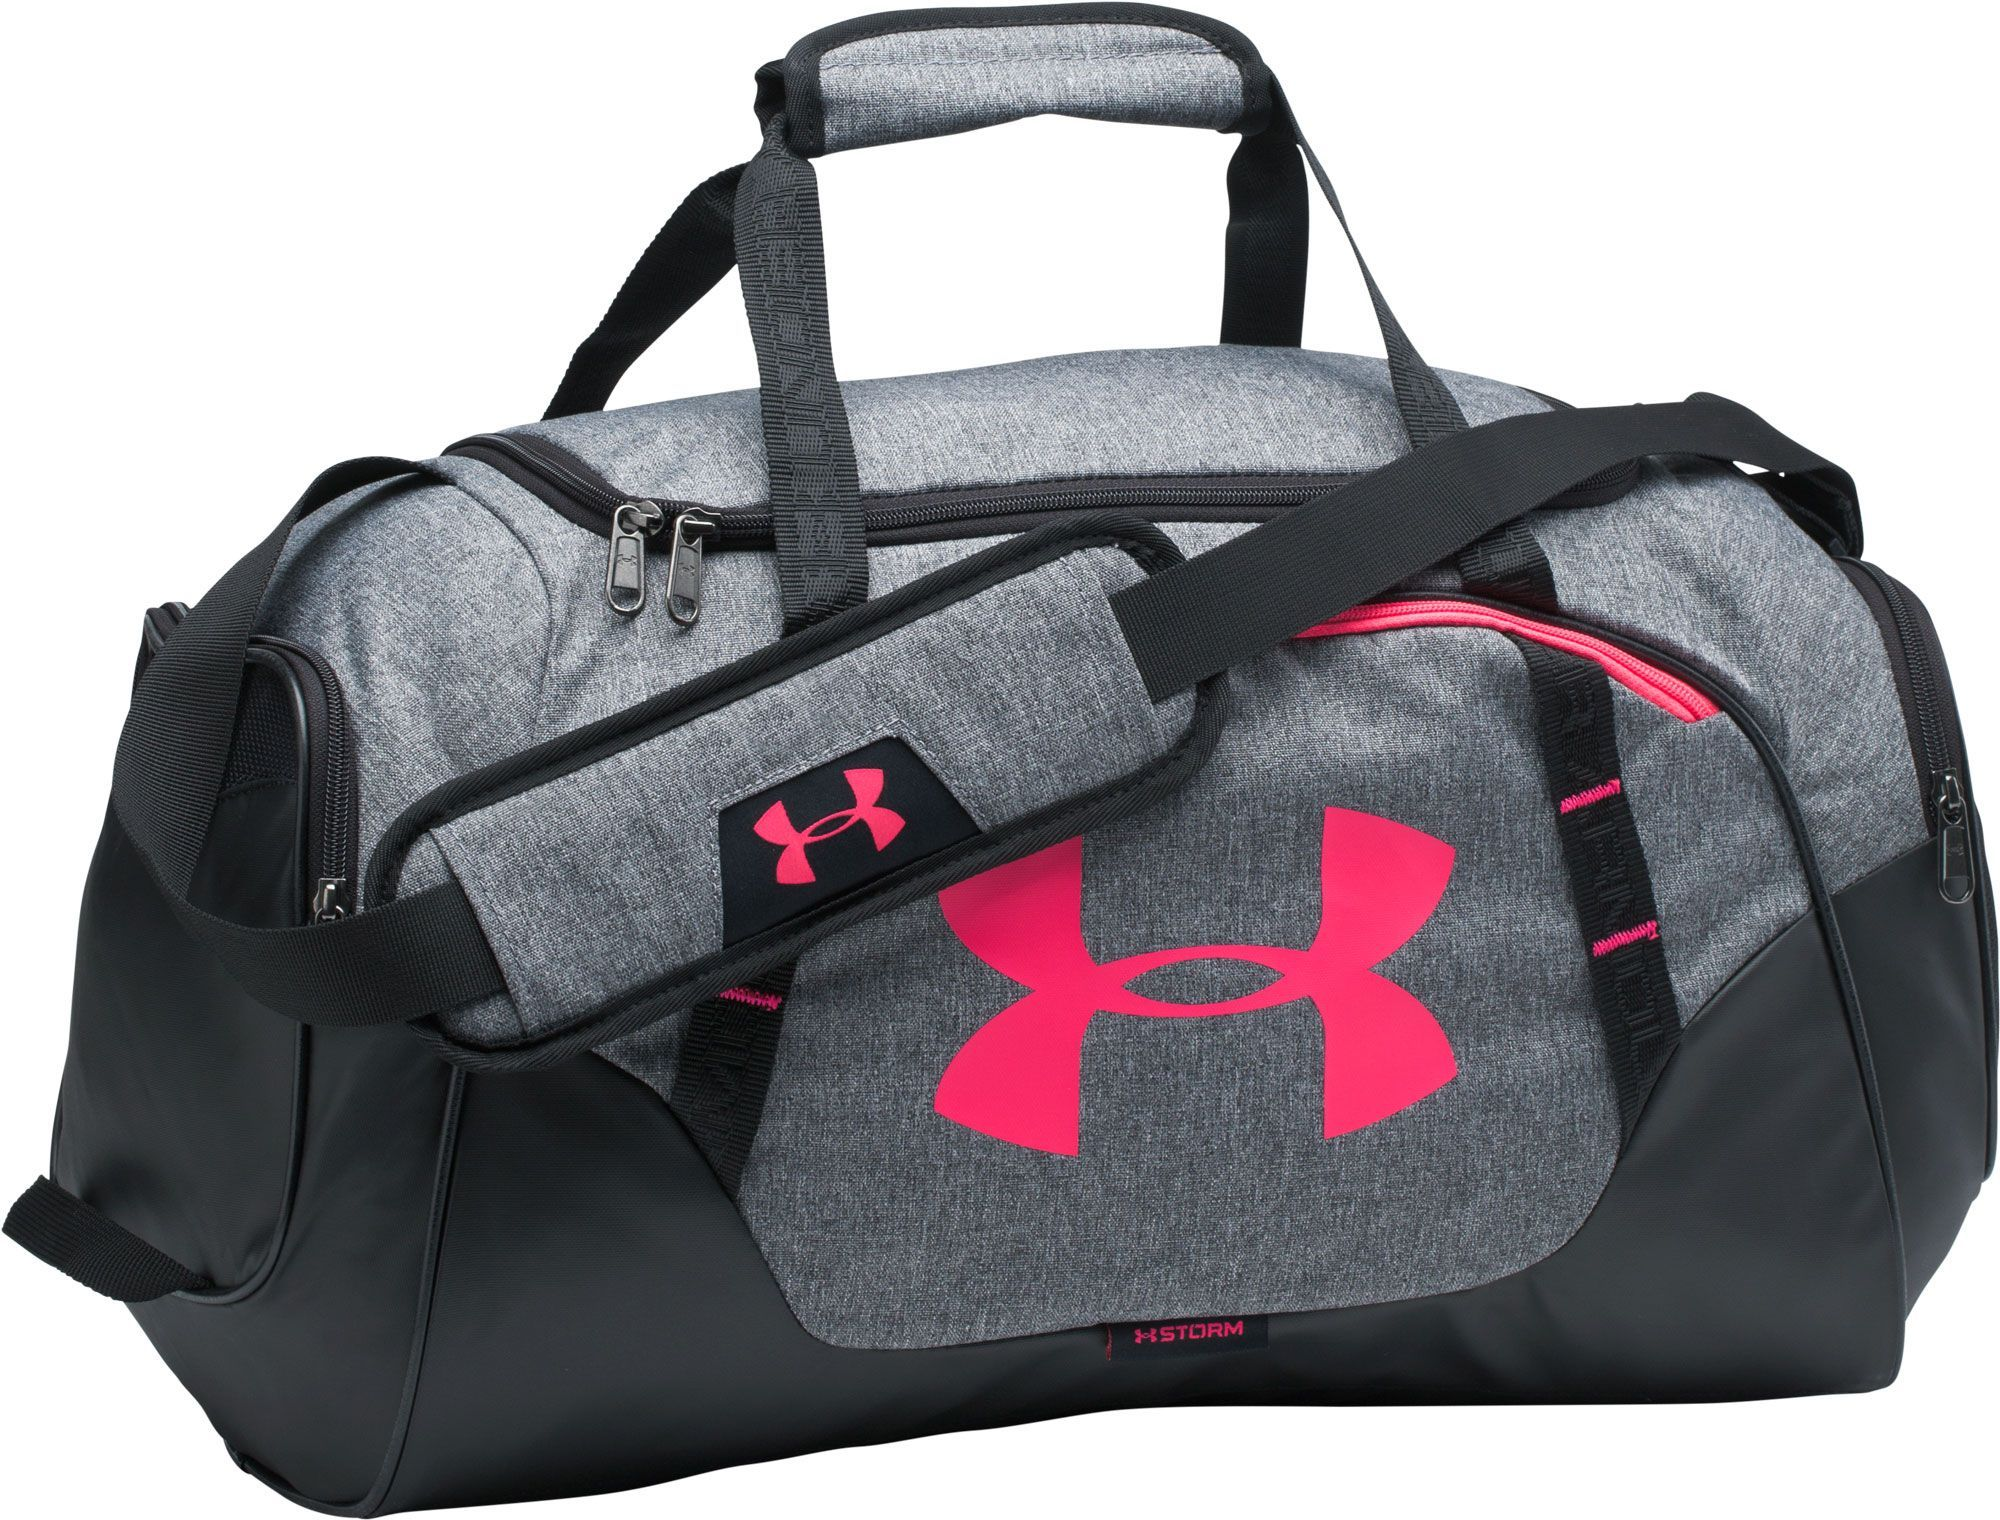 2a01a085b1 Under Armour Undeniable 3.0 Small Duffle Bag in 2019